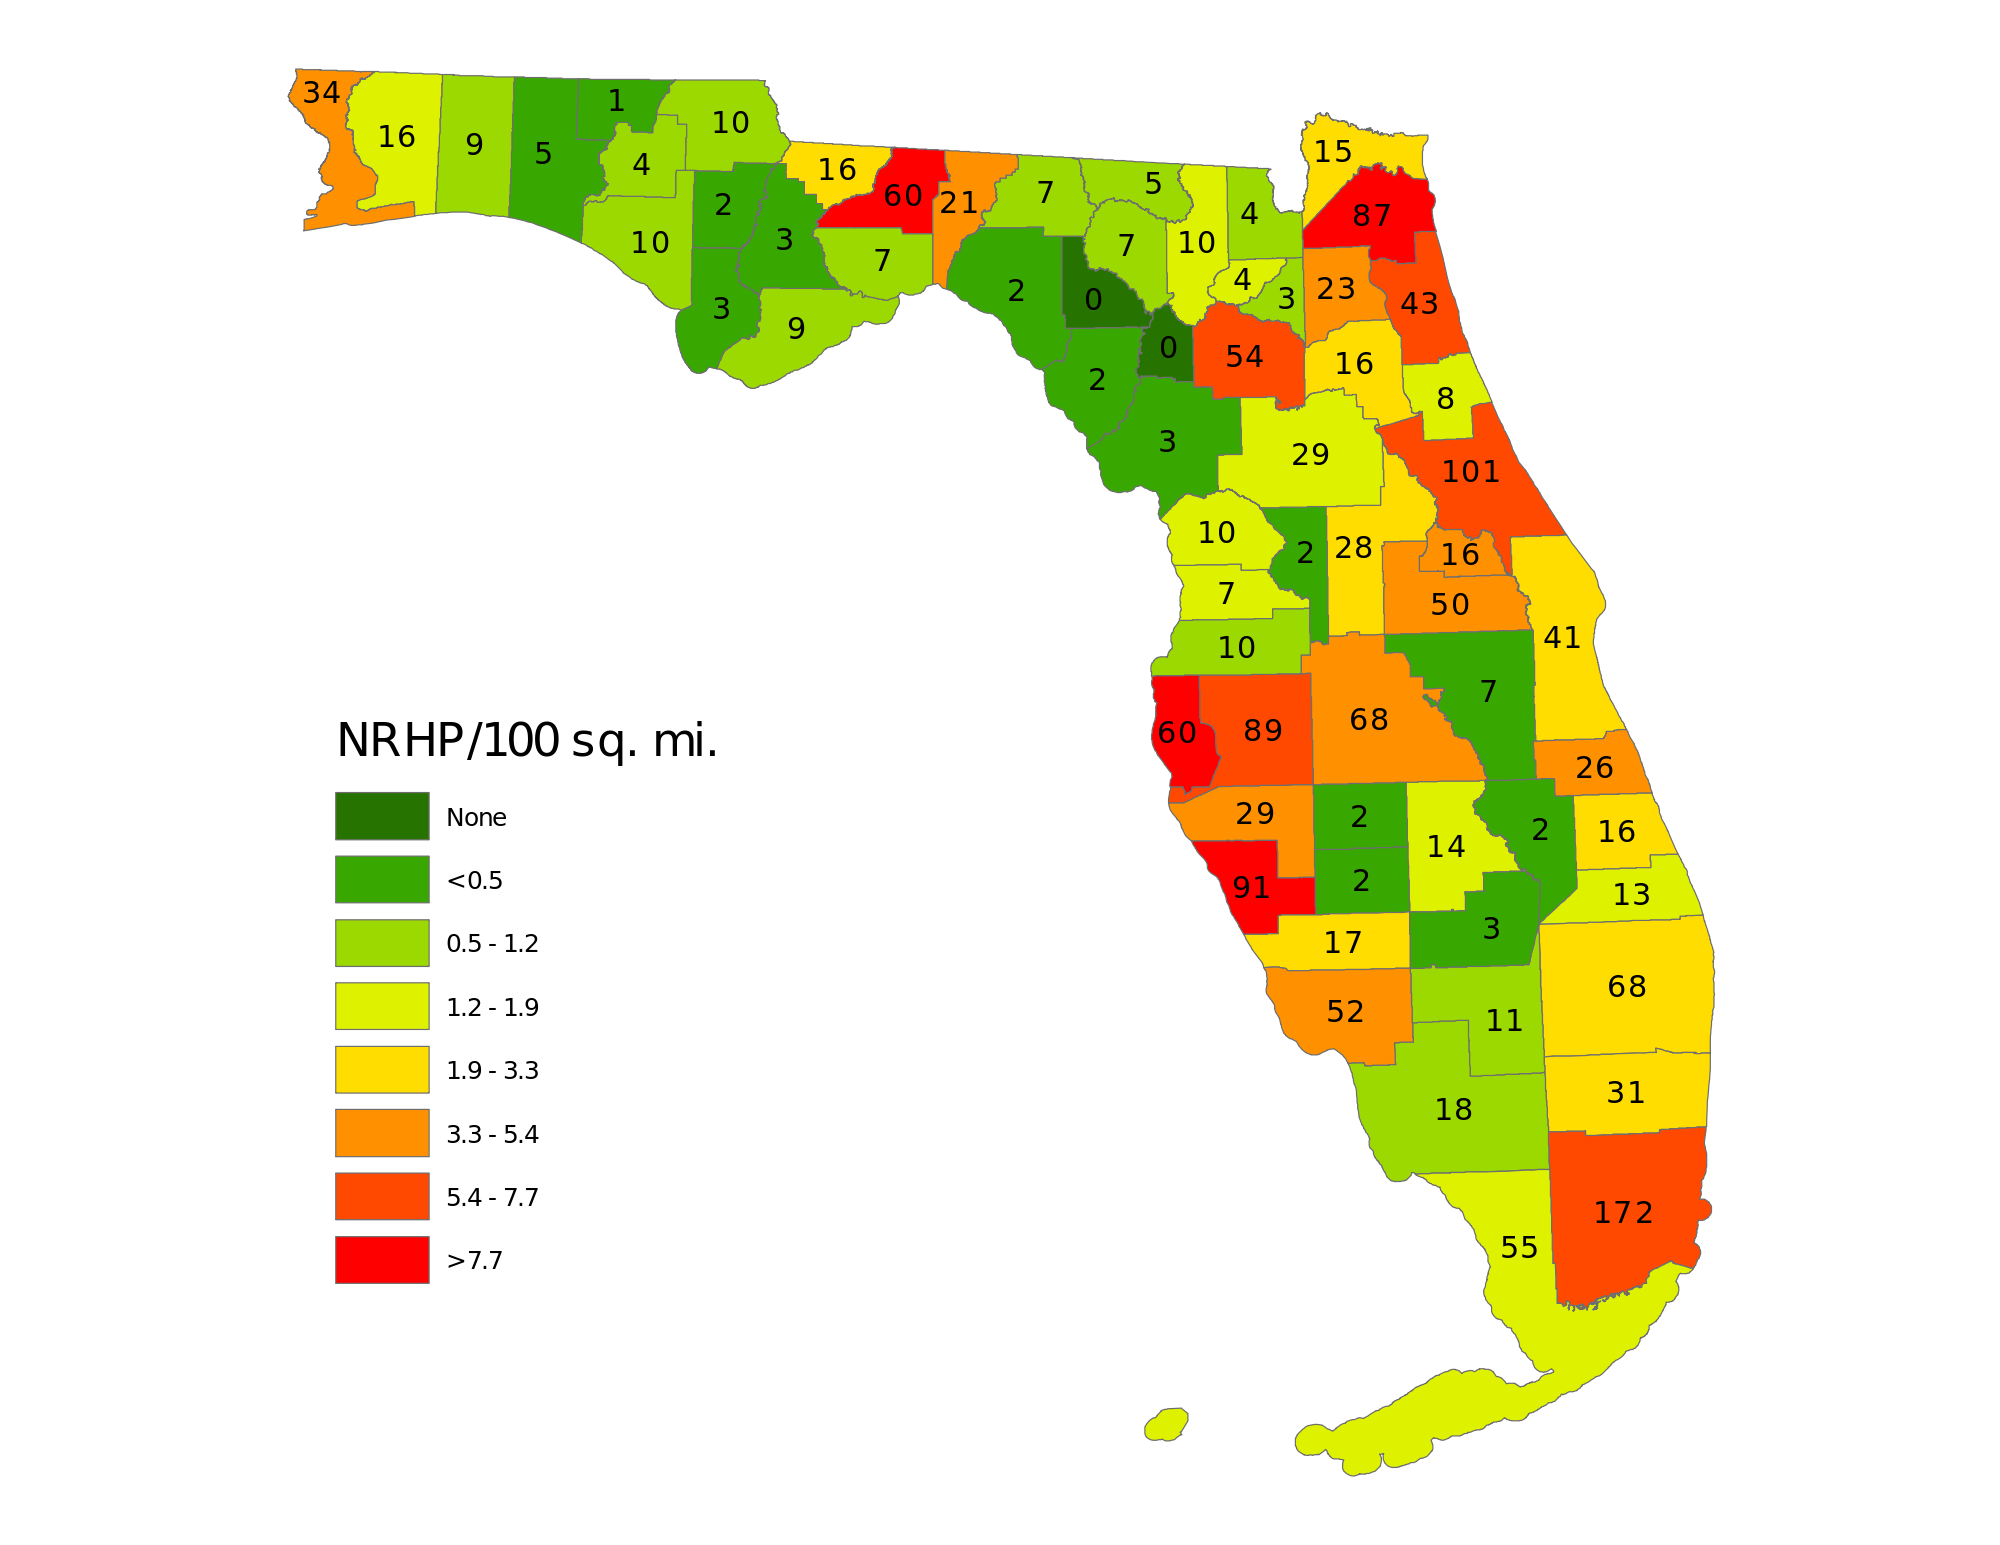 National Historical Register By Florida County  Where Does Your - Florida county map with population